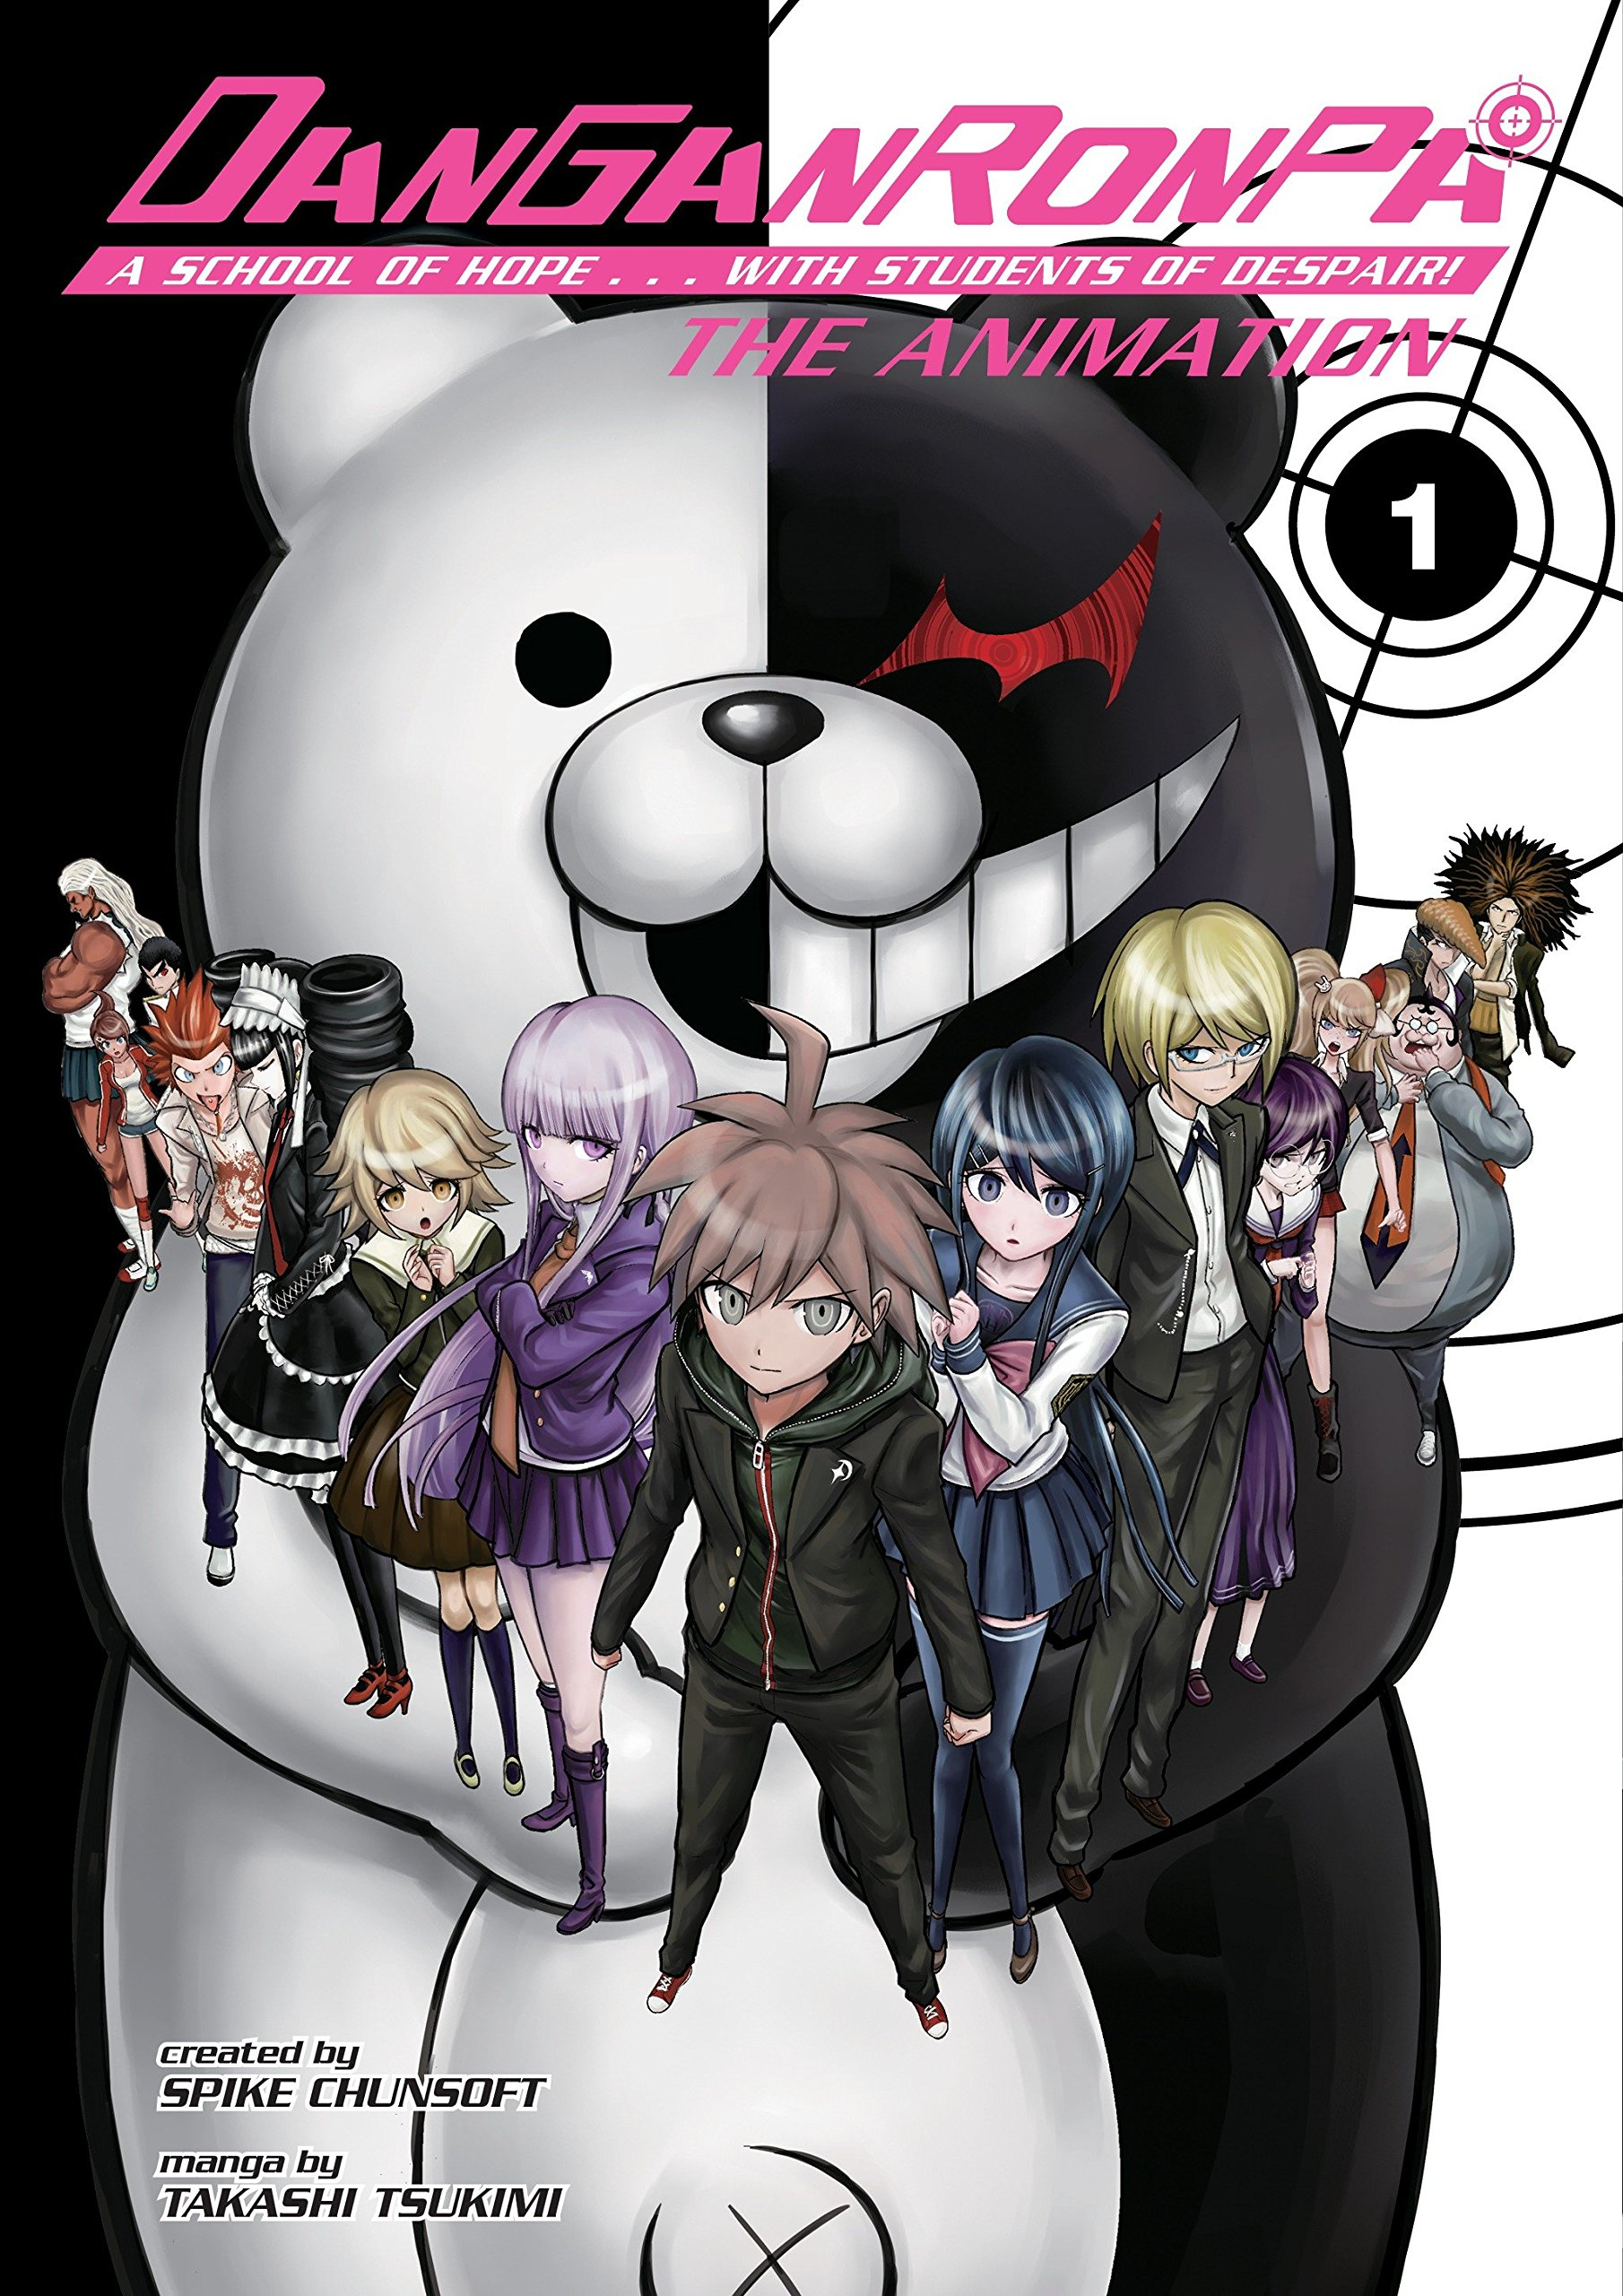 Danganronpa the animation volume 1 spike chunsoft 9781616559281 amazon com books